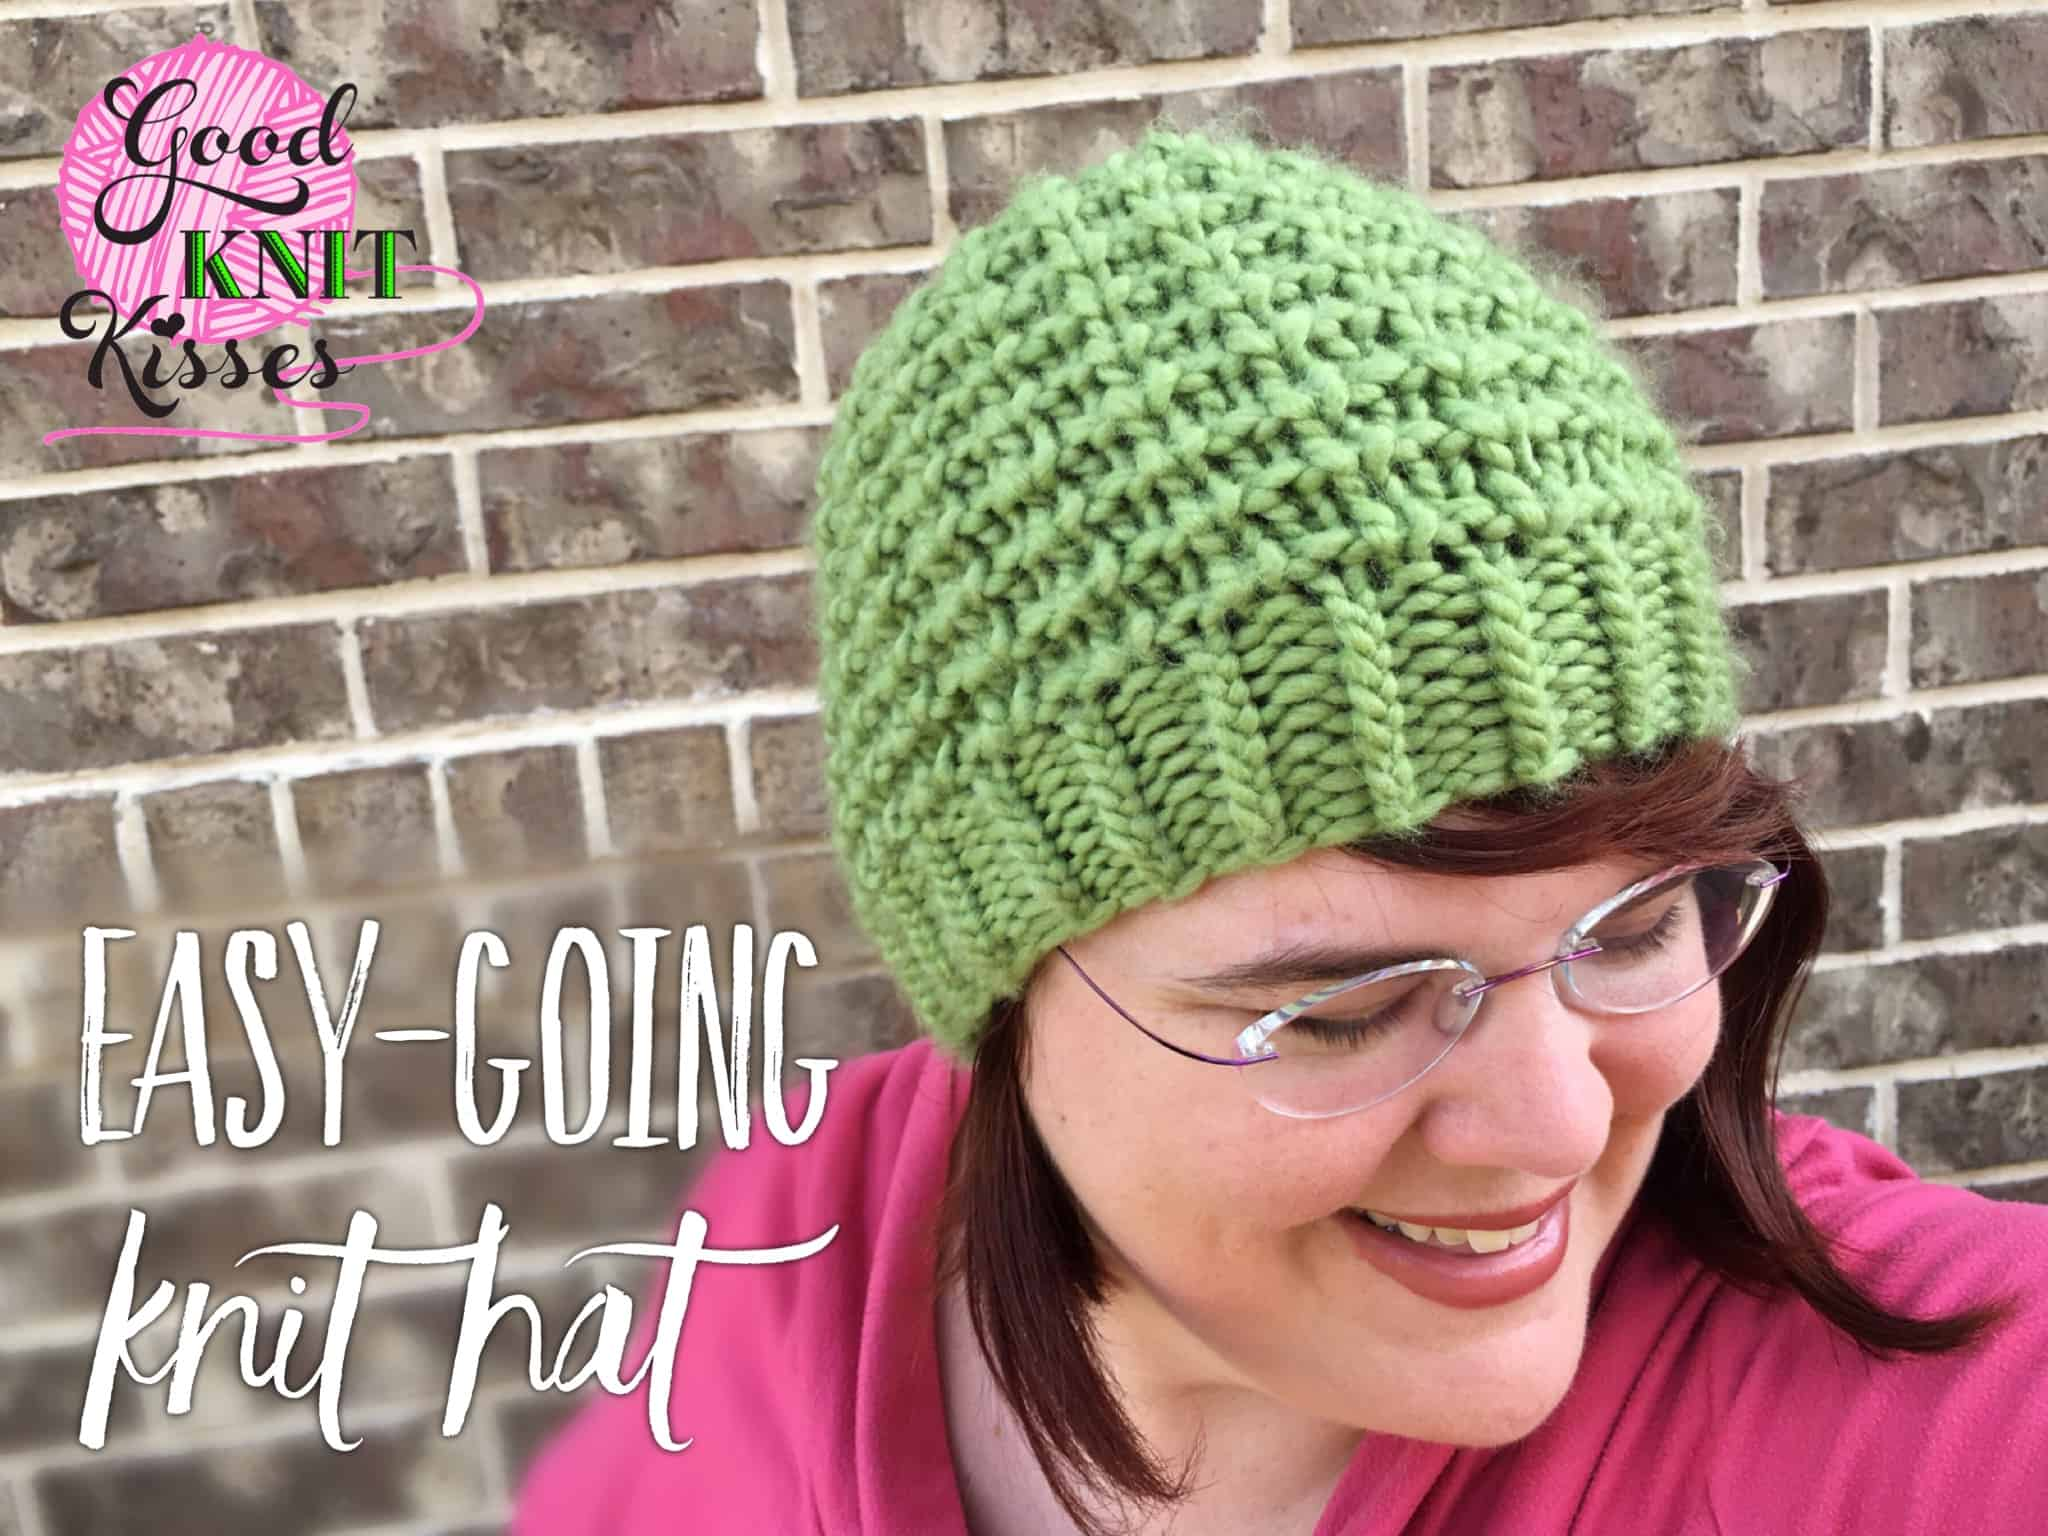 Easy-Going Knit Hat |Yarnspirations